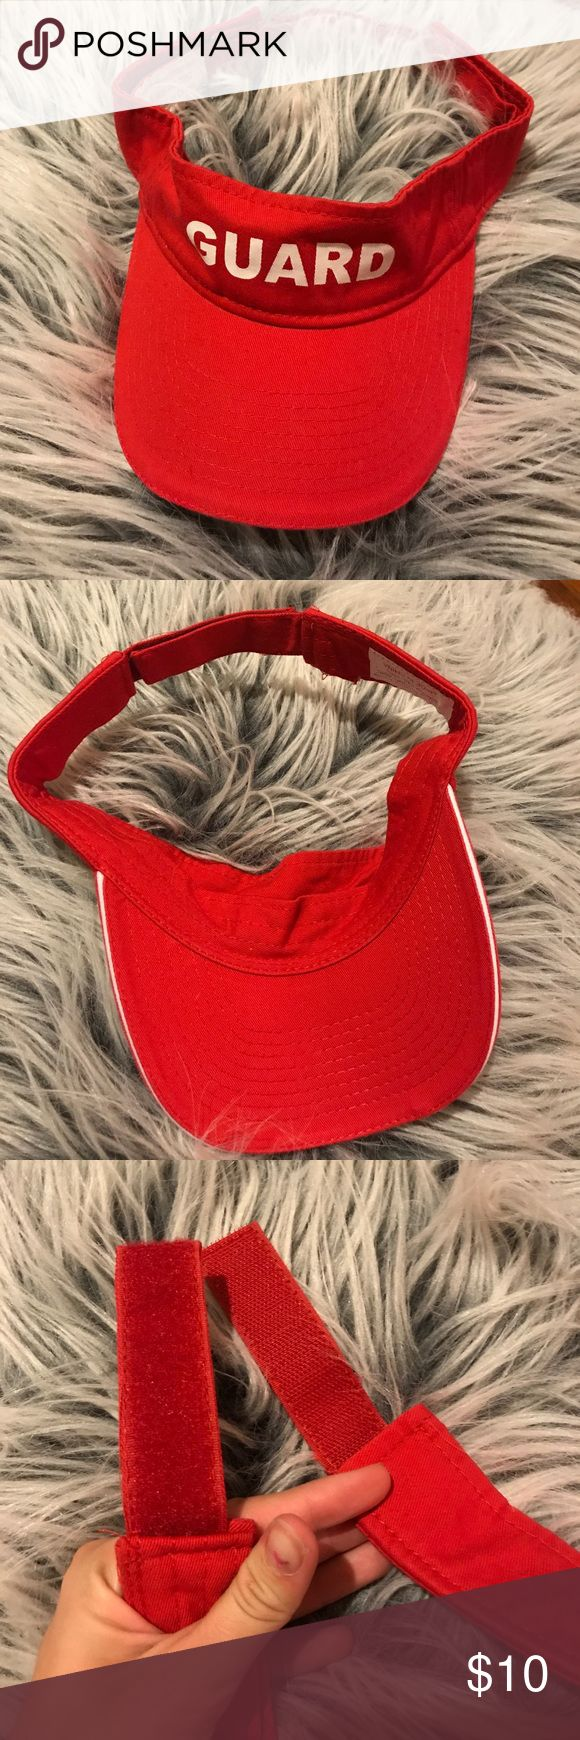 Lifeguard red visor Brand new, never been used. Red lifeguard visor. One size fits most. Velcro straps. lifeguard Accessories Hats